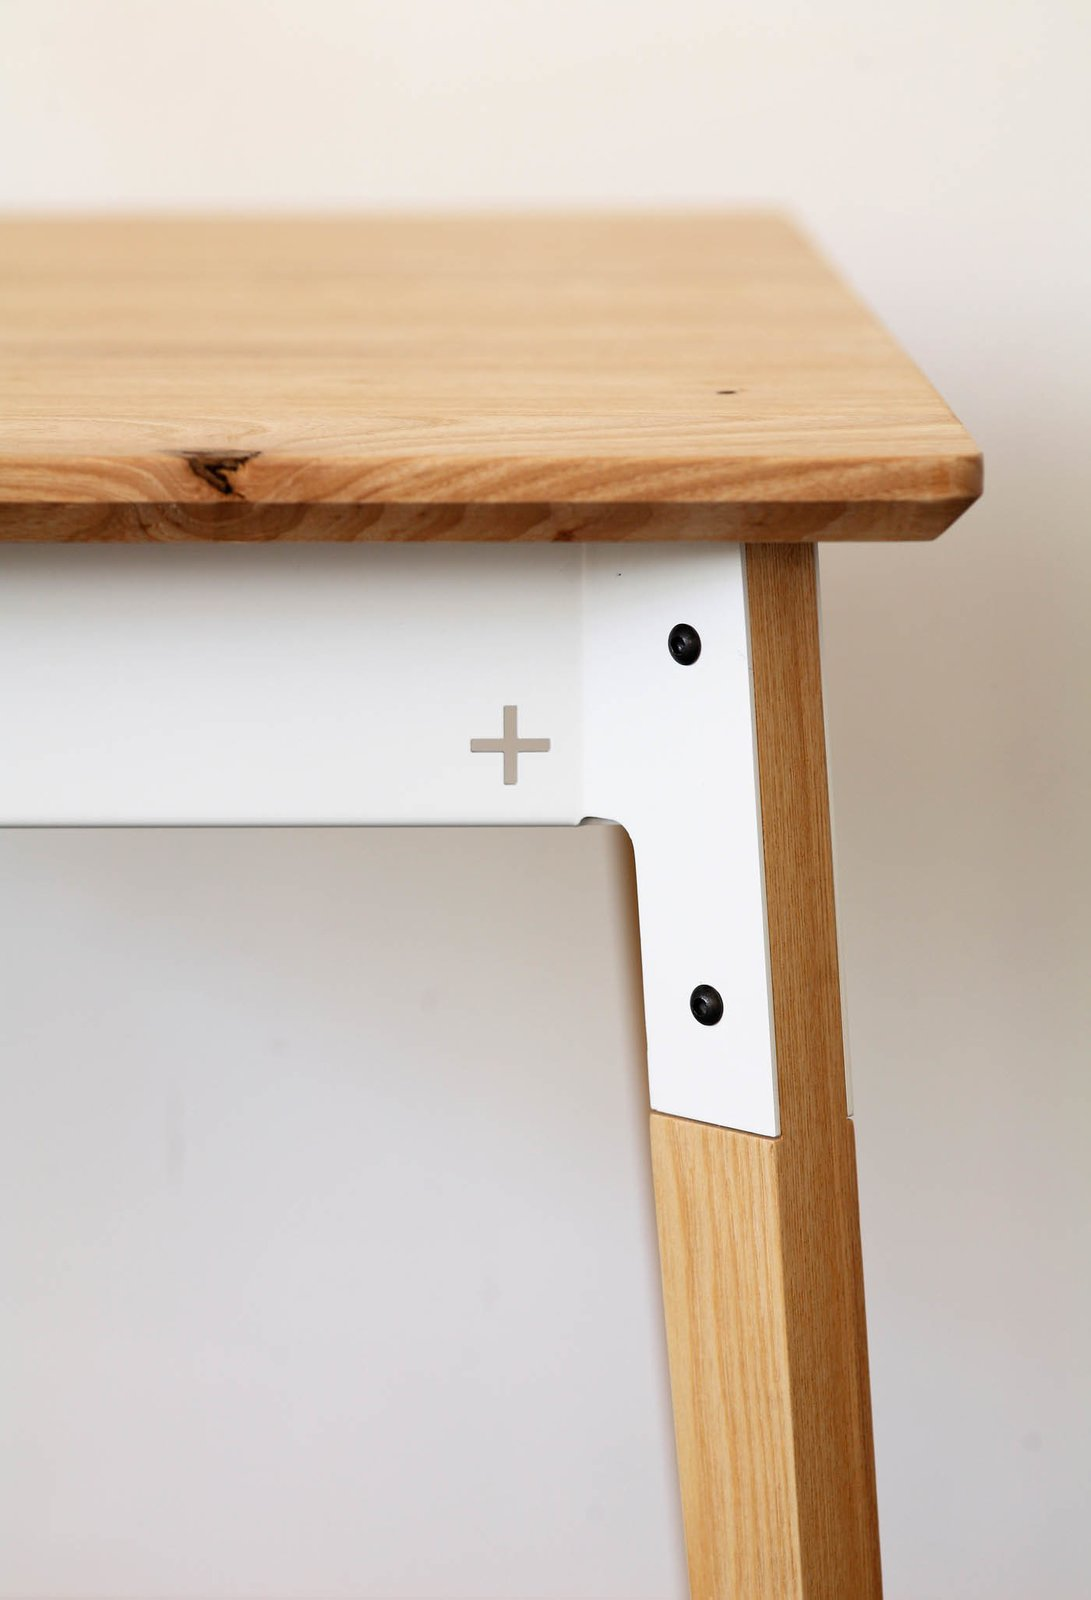 """The Huguenot Range has been expanded to include """"a variety of tables, benches and stools in many shapes and sizes,"""" Pedersen says. """"We offer it in oak, ash, and wormy chestnut timber, with the frame being powder-coated"""" steel.  Photo 13 of 16 in Two Cool Surfers Design Some Serious Furniture"""